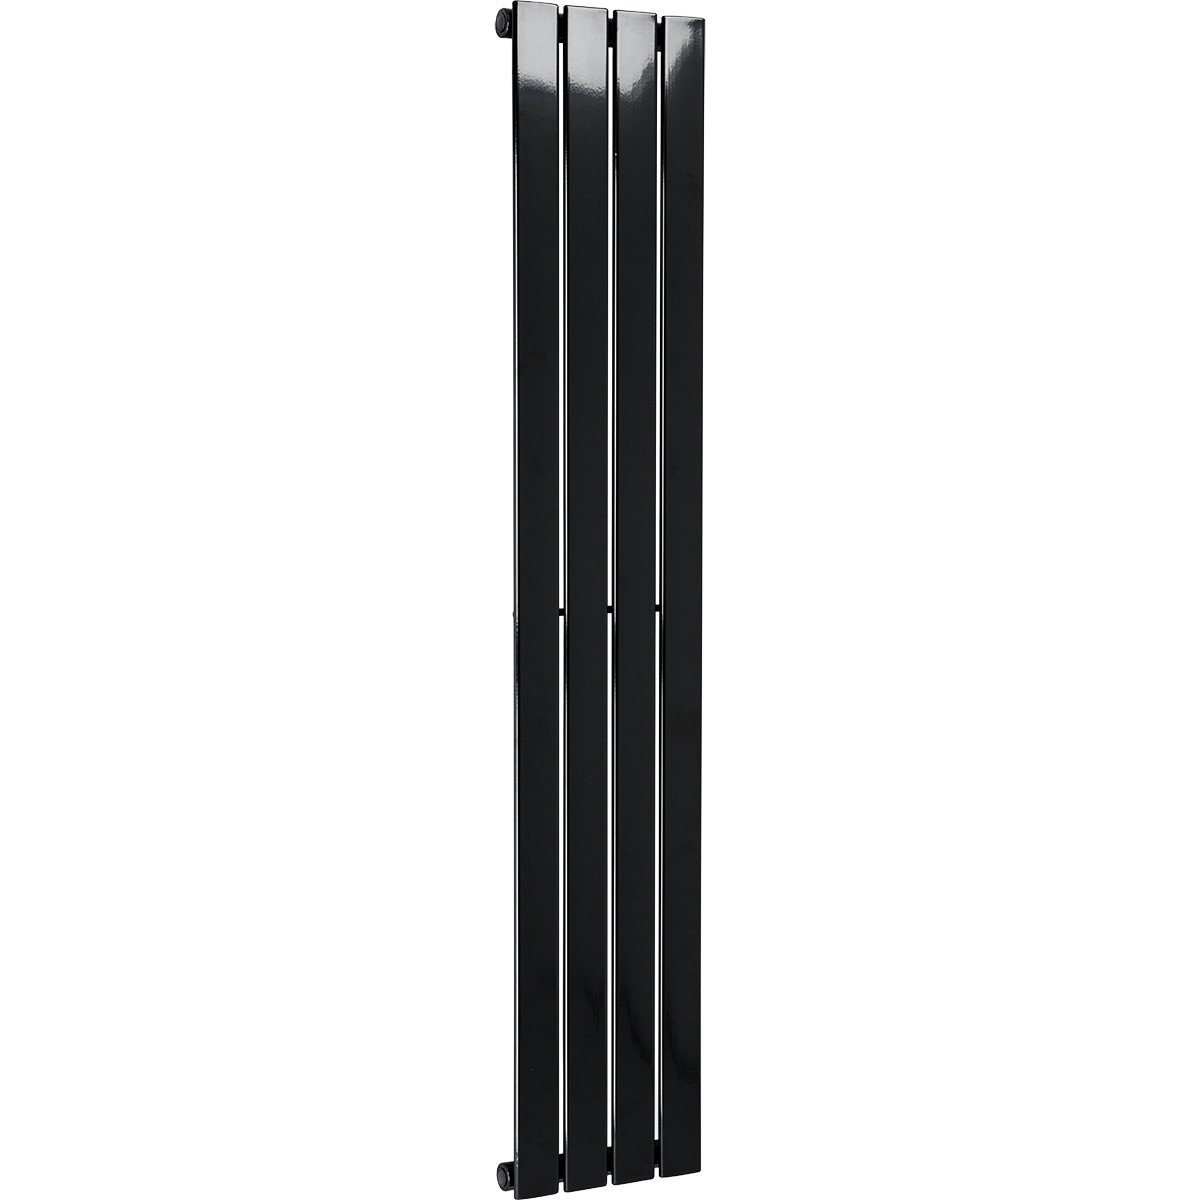 Hudson 1600 x 300 Single Panel Black Radiator